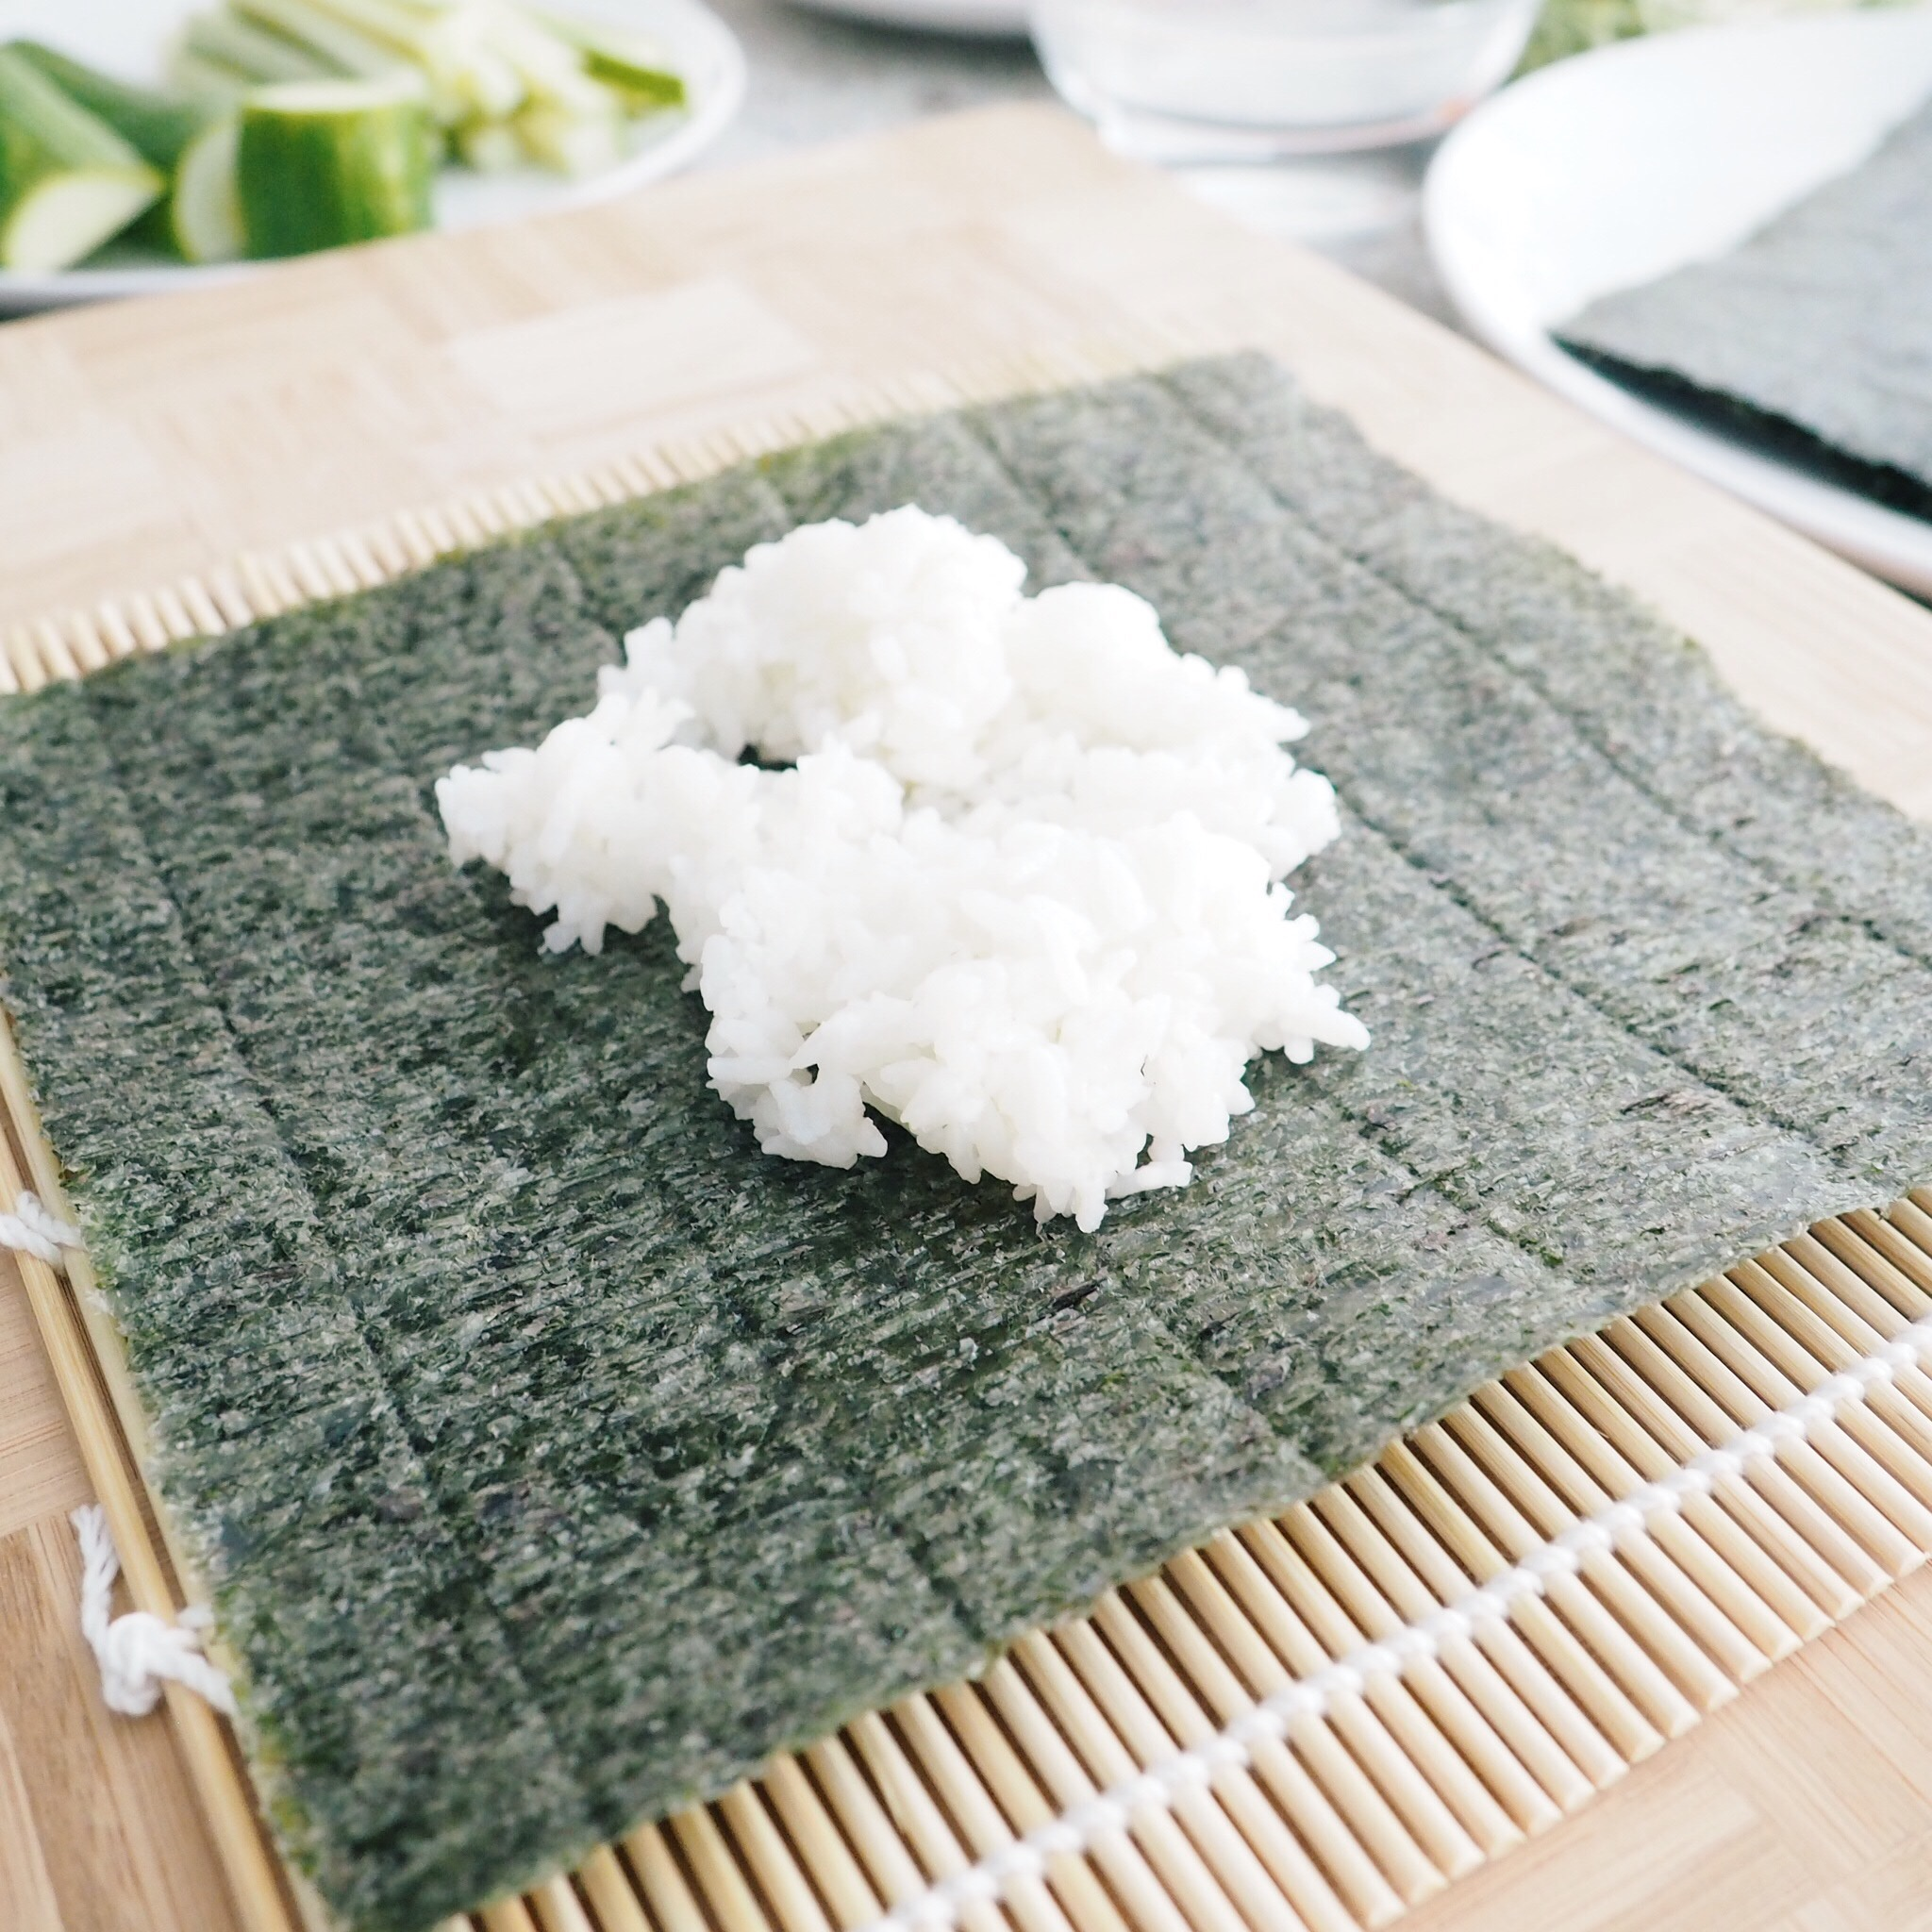 Step 1: Lay nori on bamboo mat roller and add about 1/2 cup of sushi rice